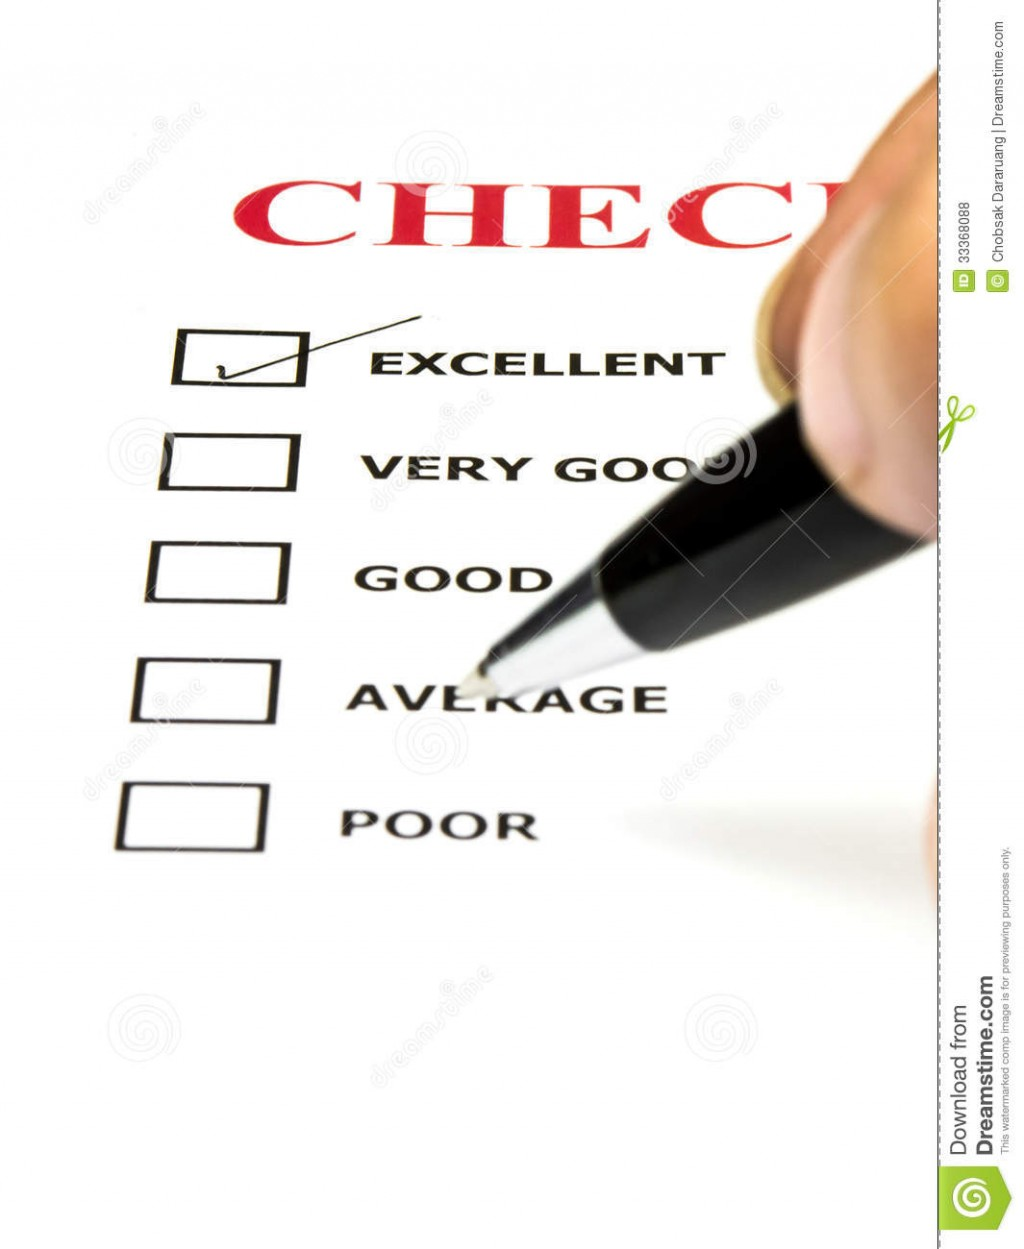 001 Essay Example Check List Survay Paper Close Up Angled Shot Survey Form Tick Excellent Box Customer Service Archaicawful My For Punctuation Errors Free On Turnitin Grammar Large